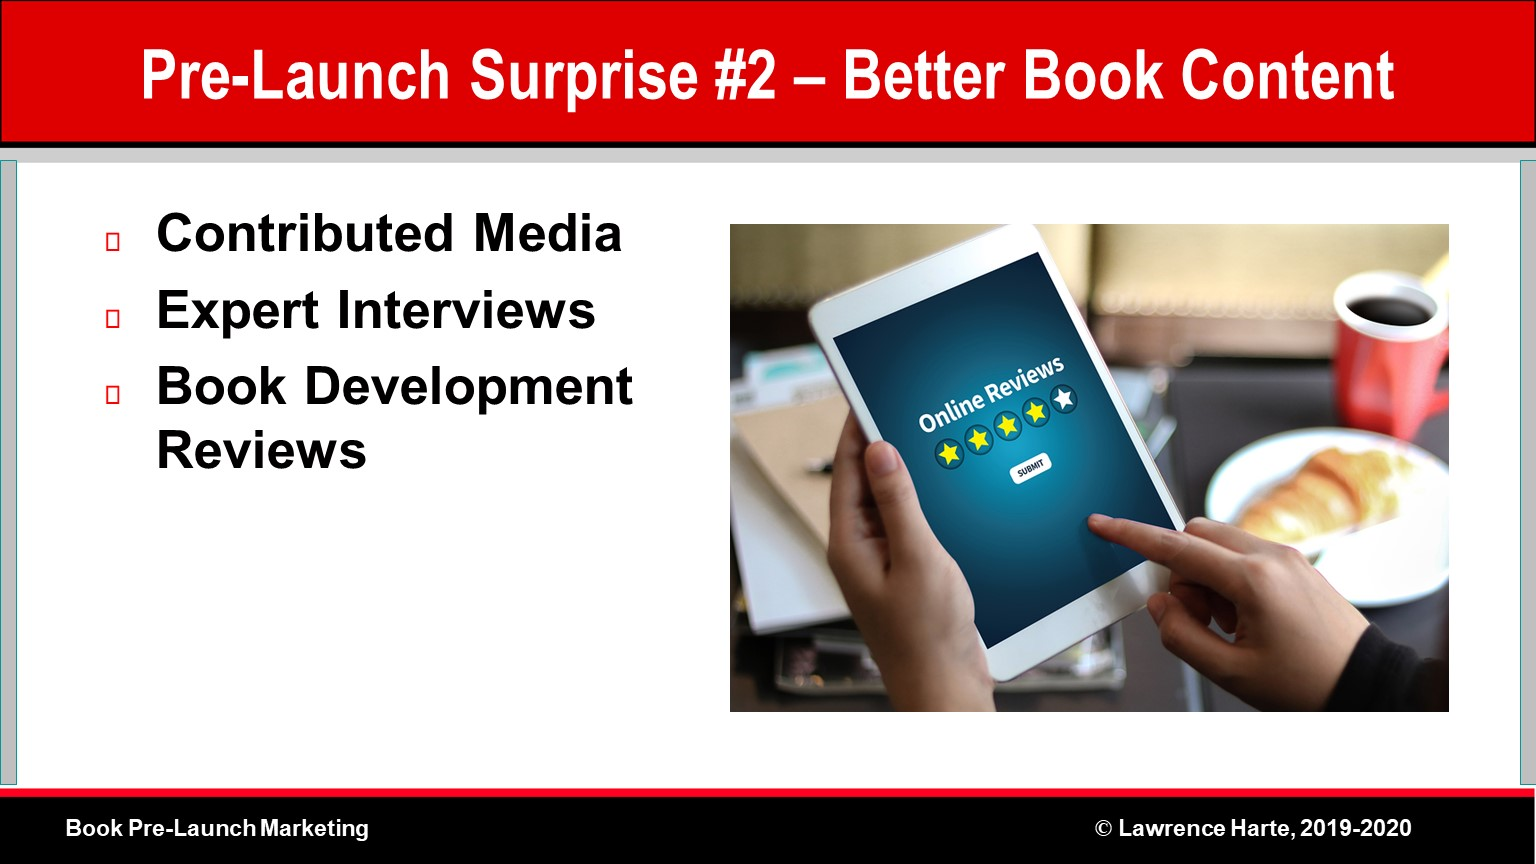 Book Pre-Launch Marketing Improves Book Content